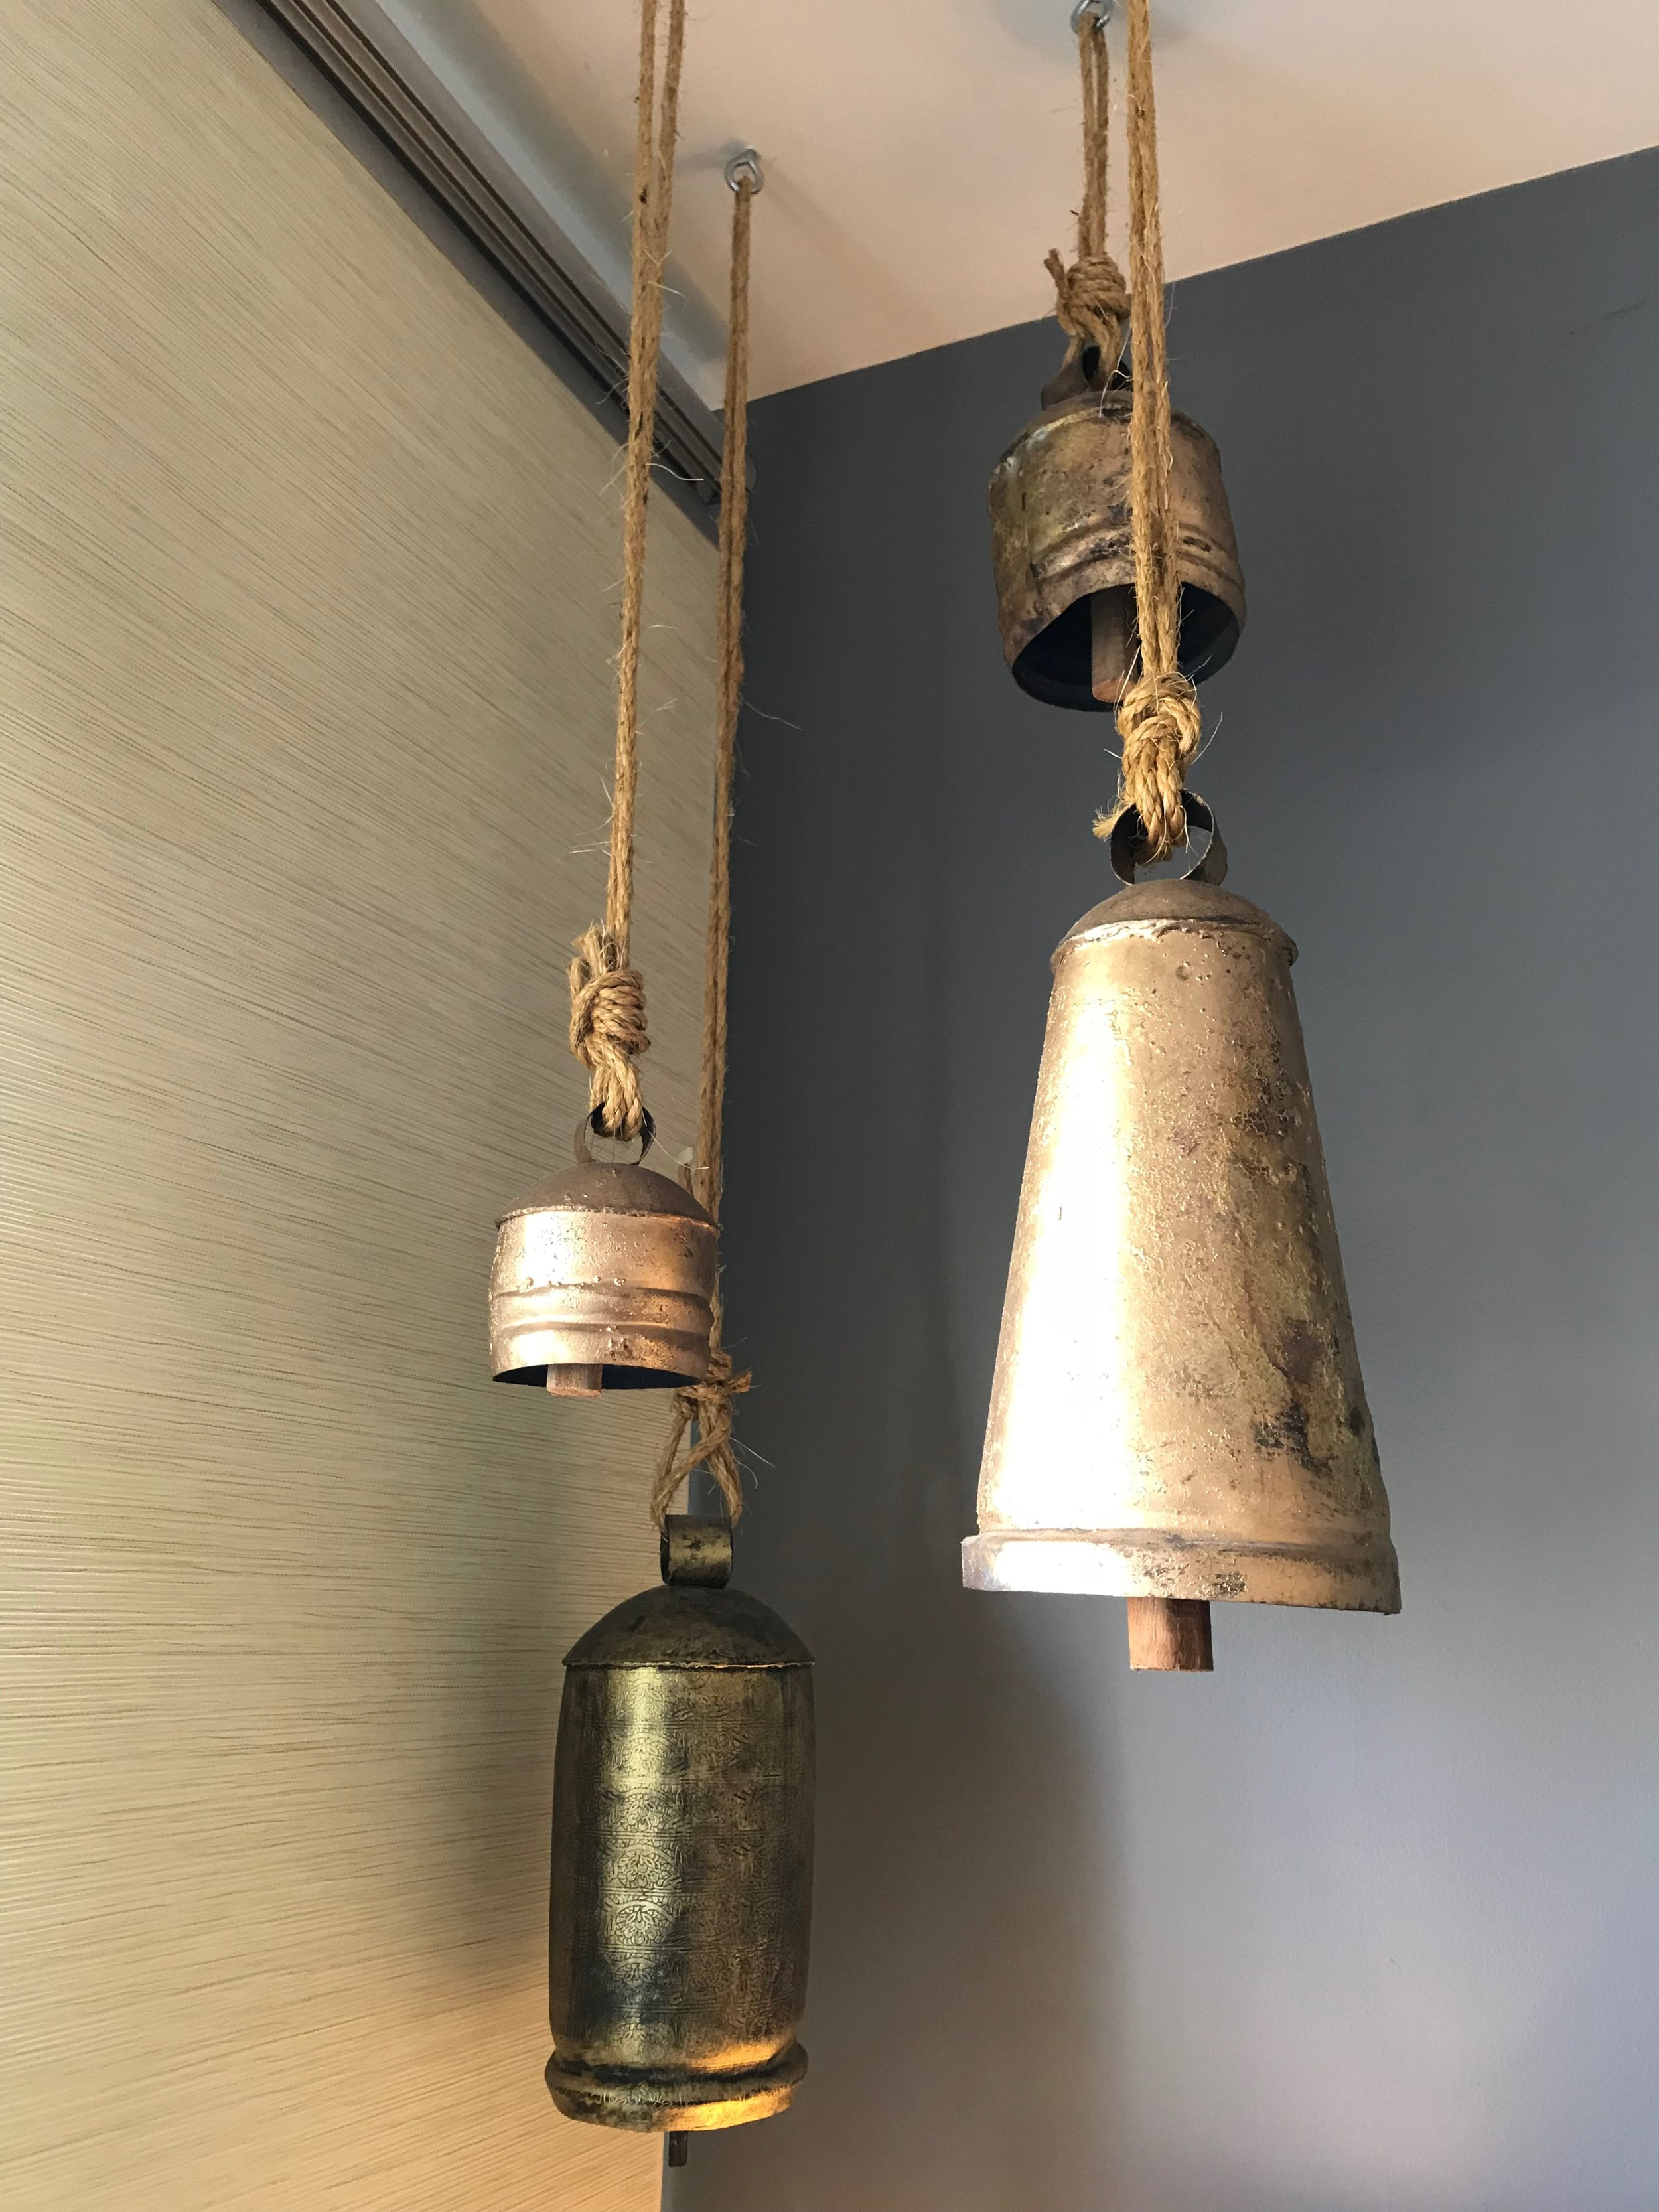 Meditative bells hanging in the office